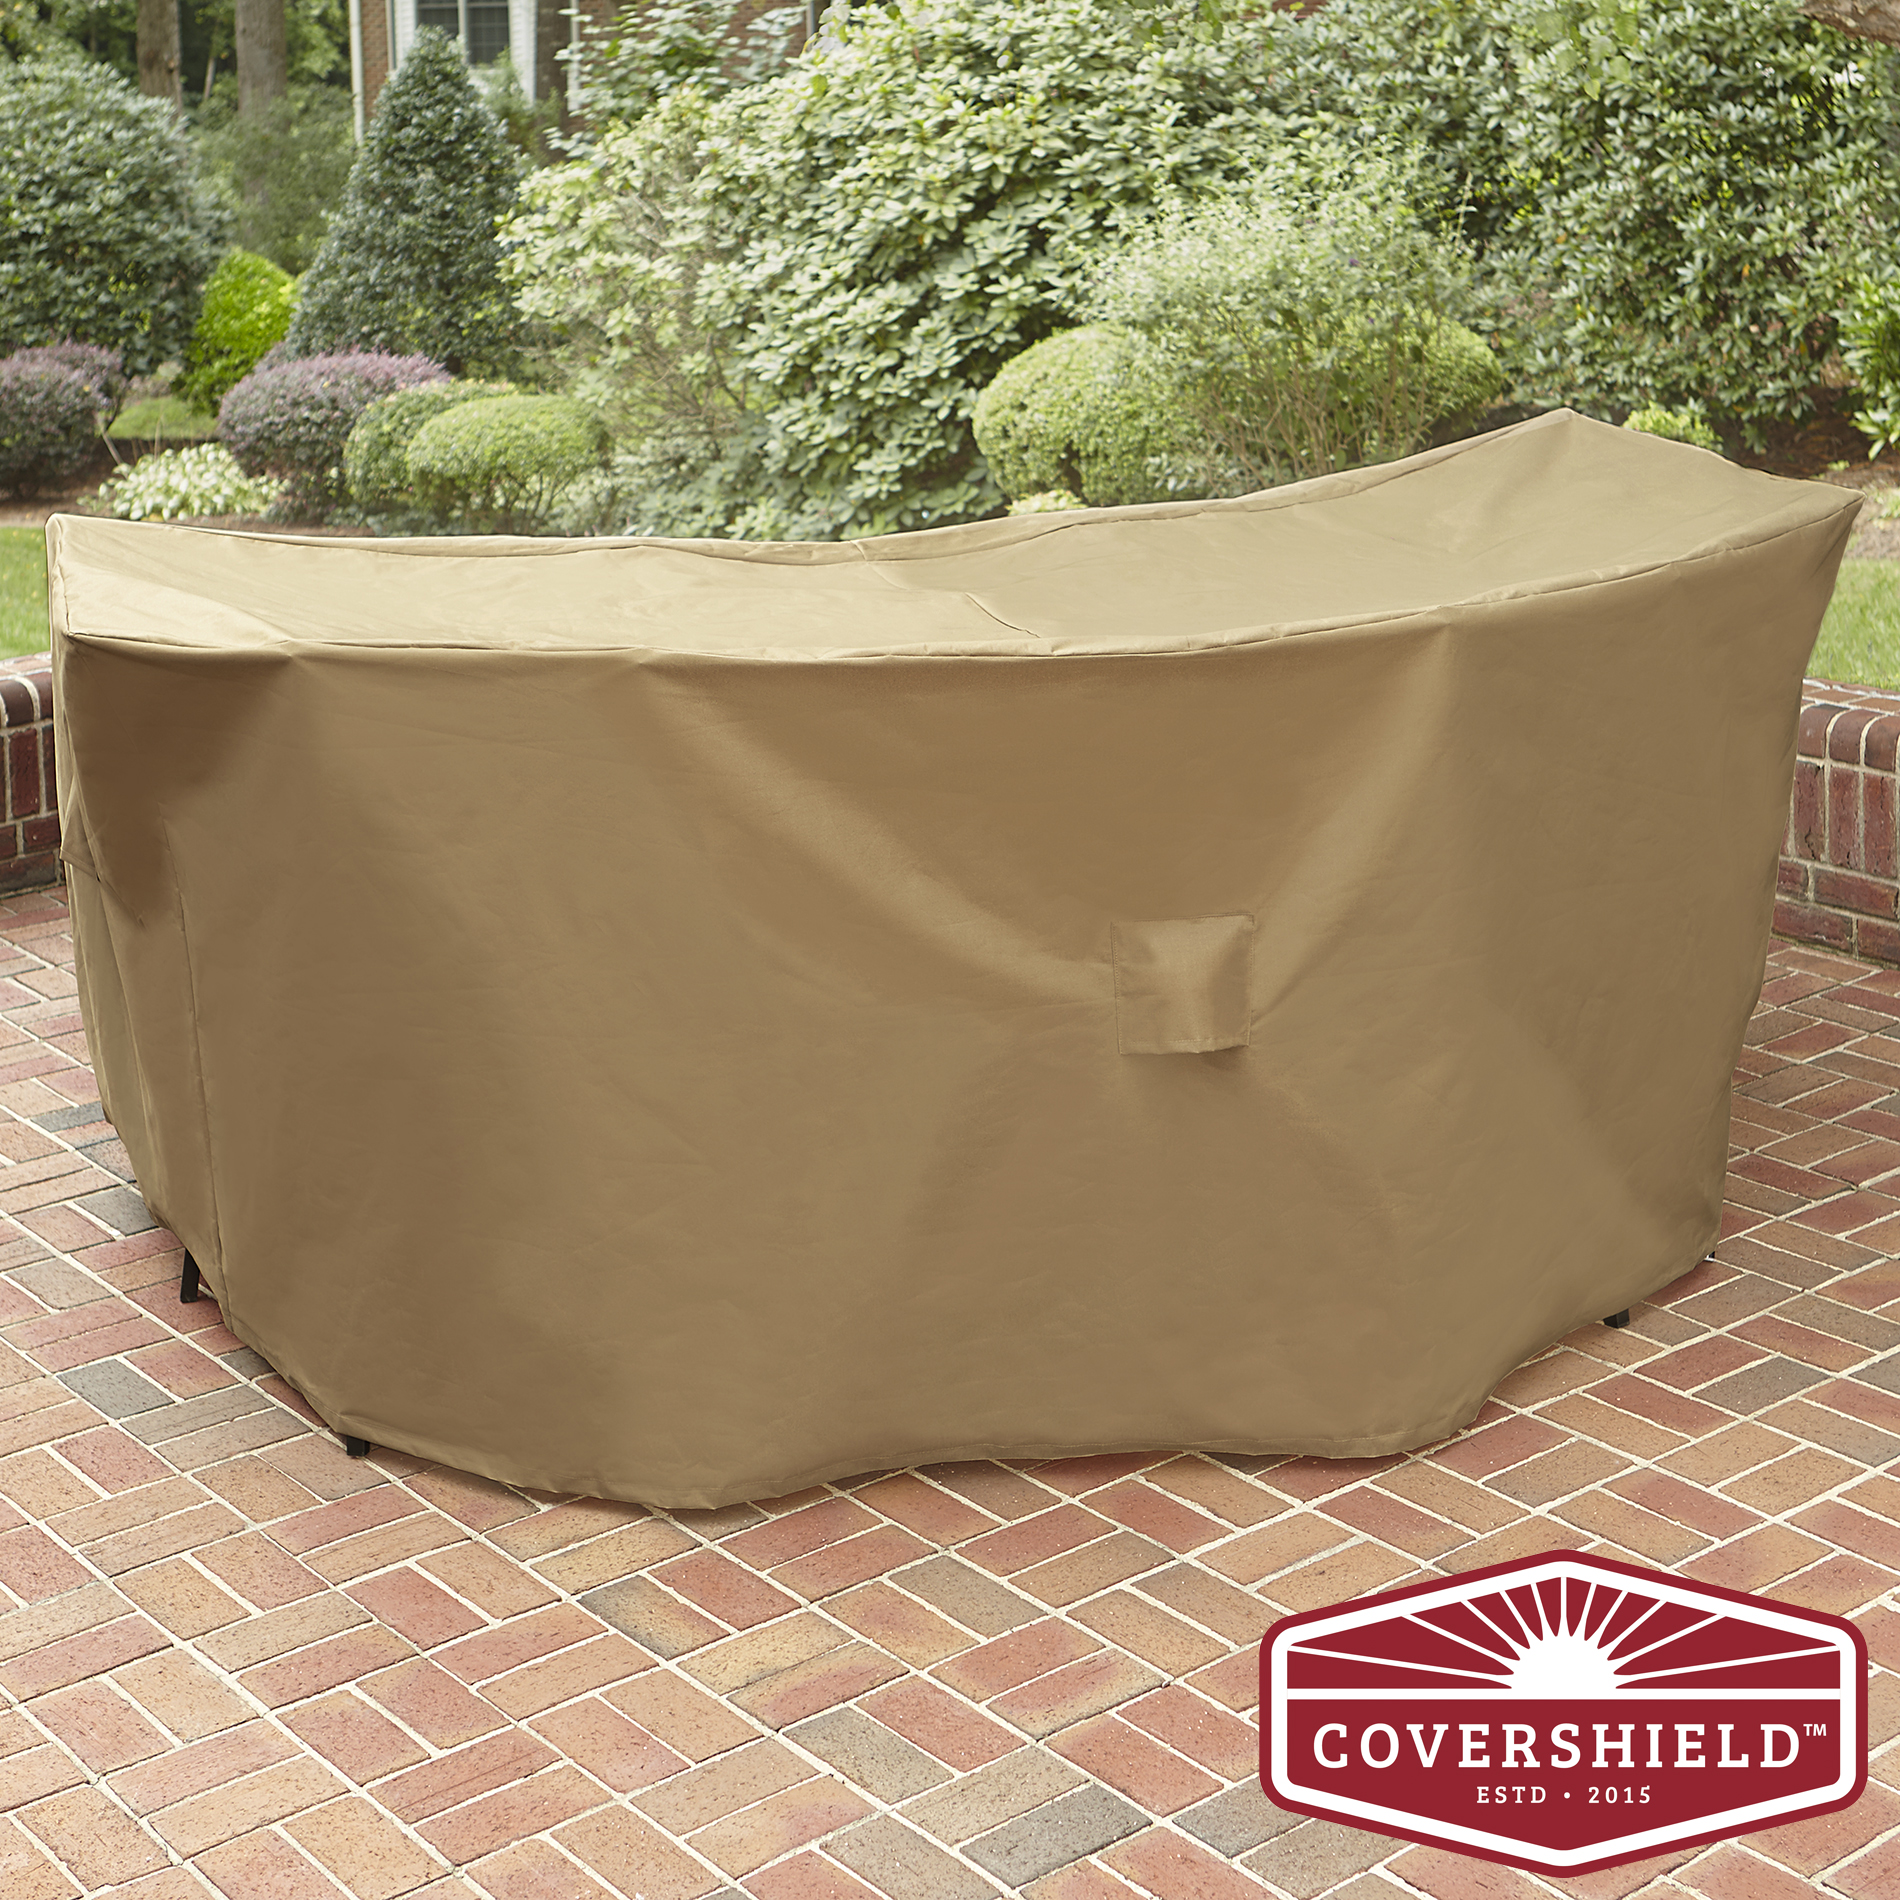 Covershield Bar Cover- Deluxe - Outdoor Living Patio